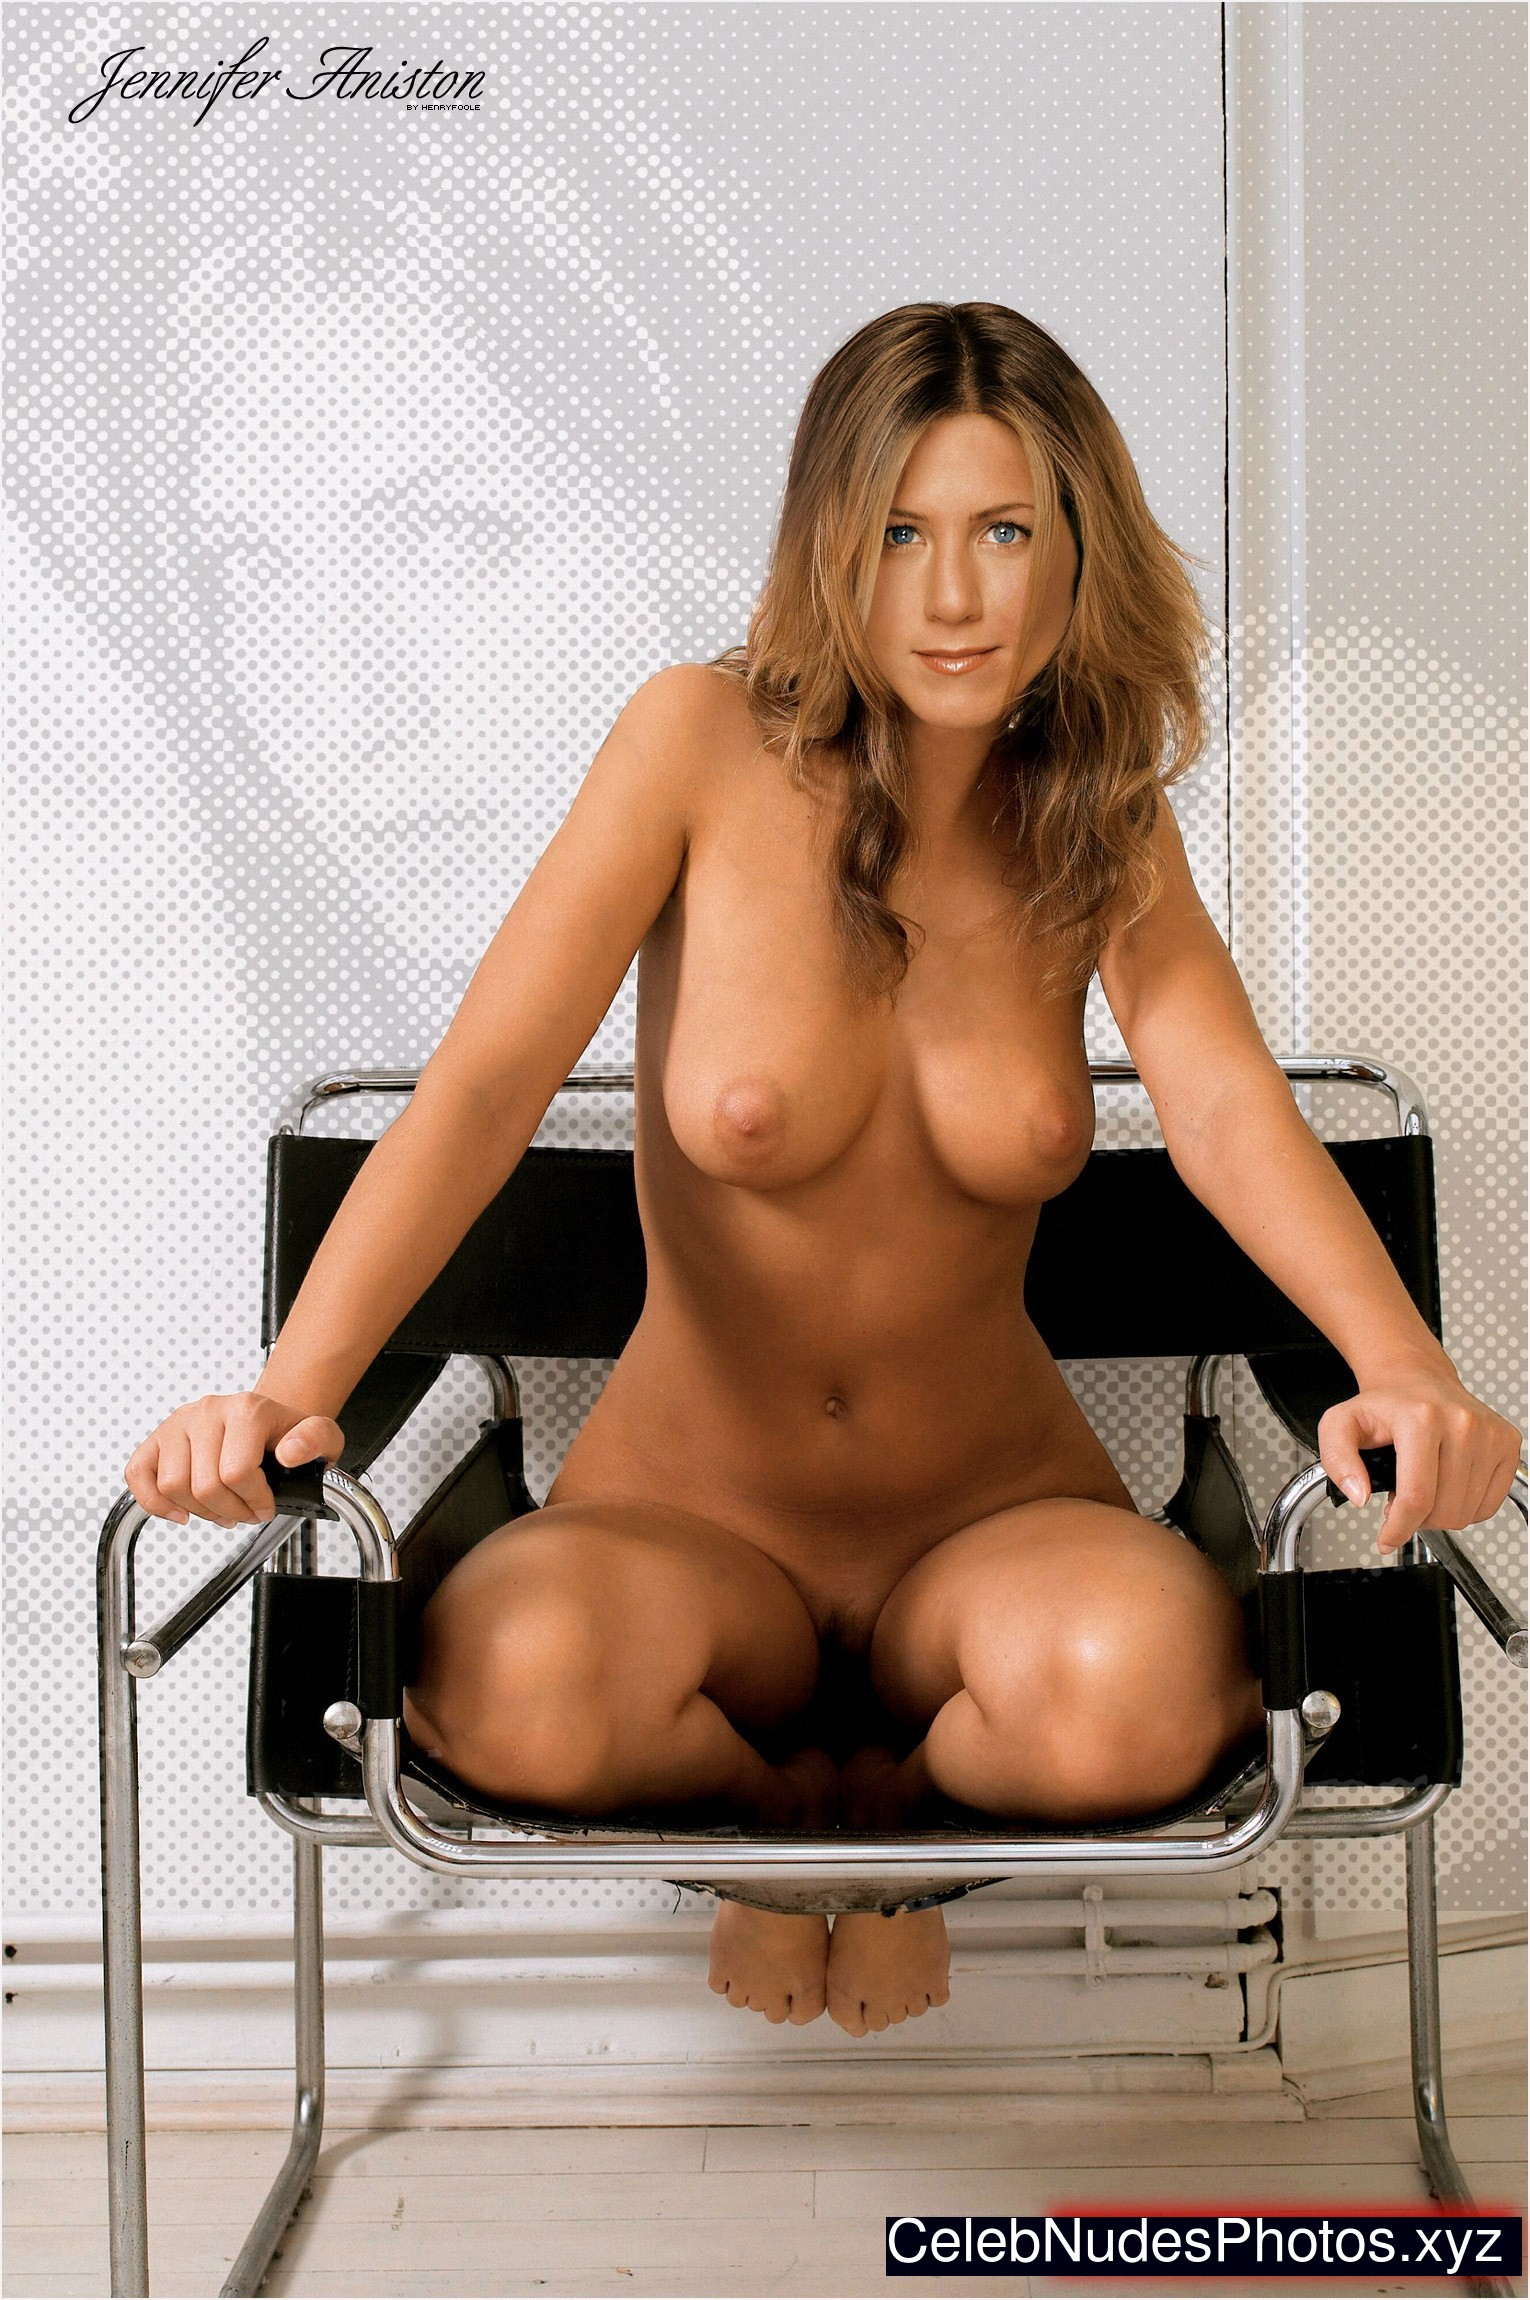 from Desmond playboy celebrity nude photos